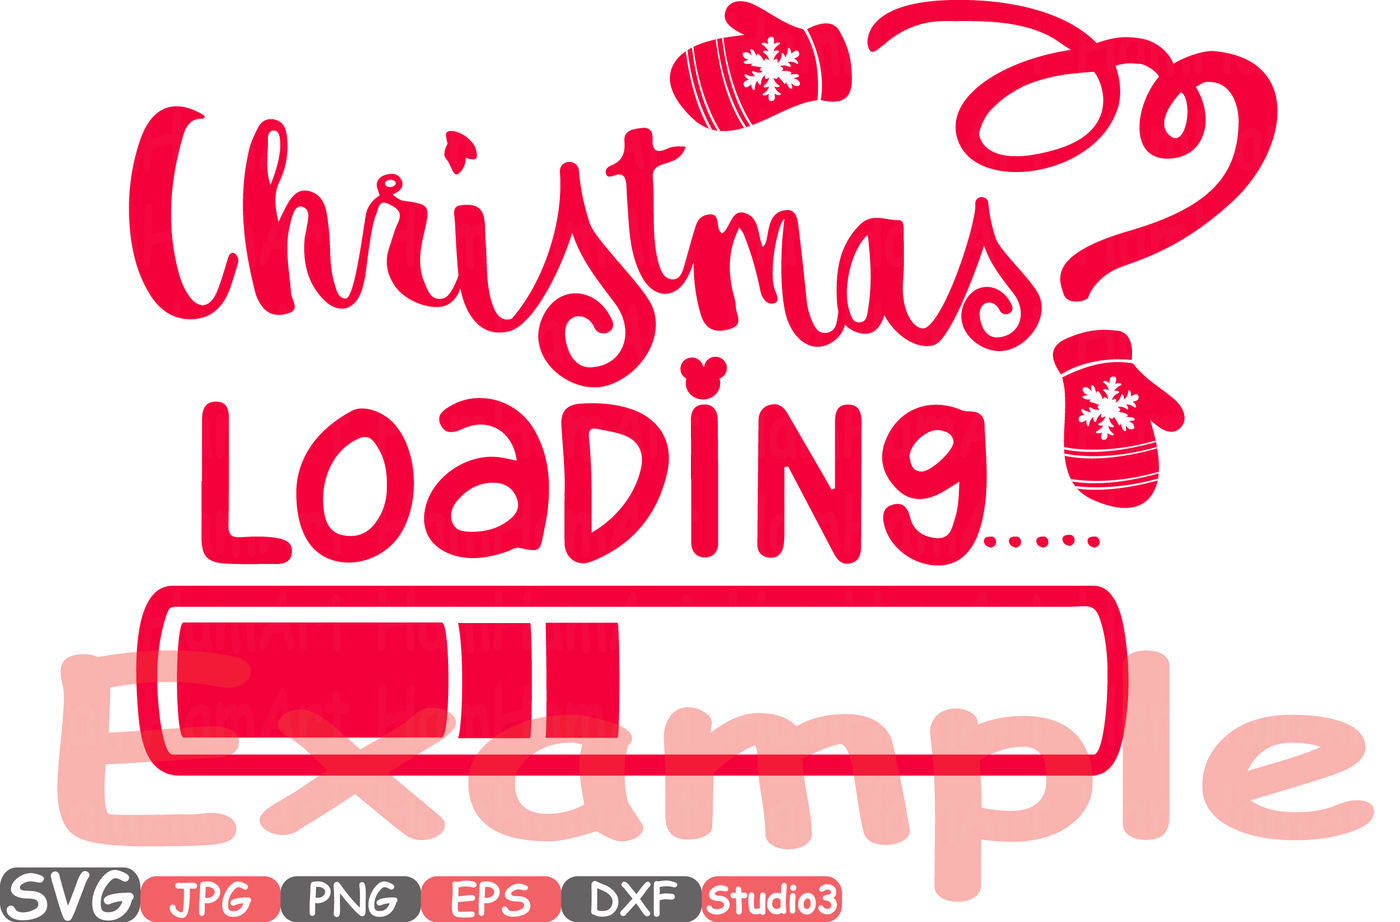 Christmas Loading Clipart Xmas Winter Snow Santa Claus Merry